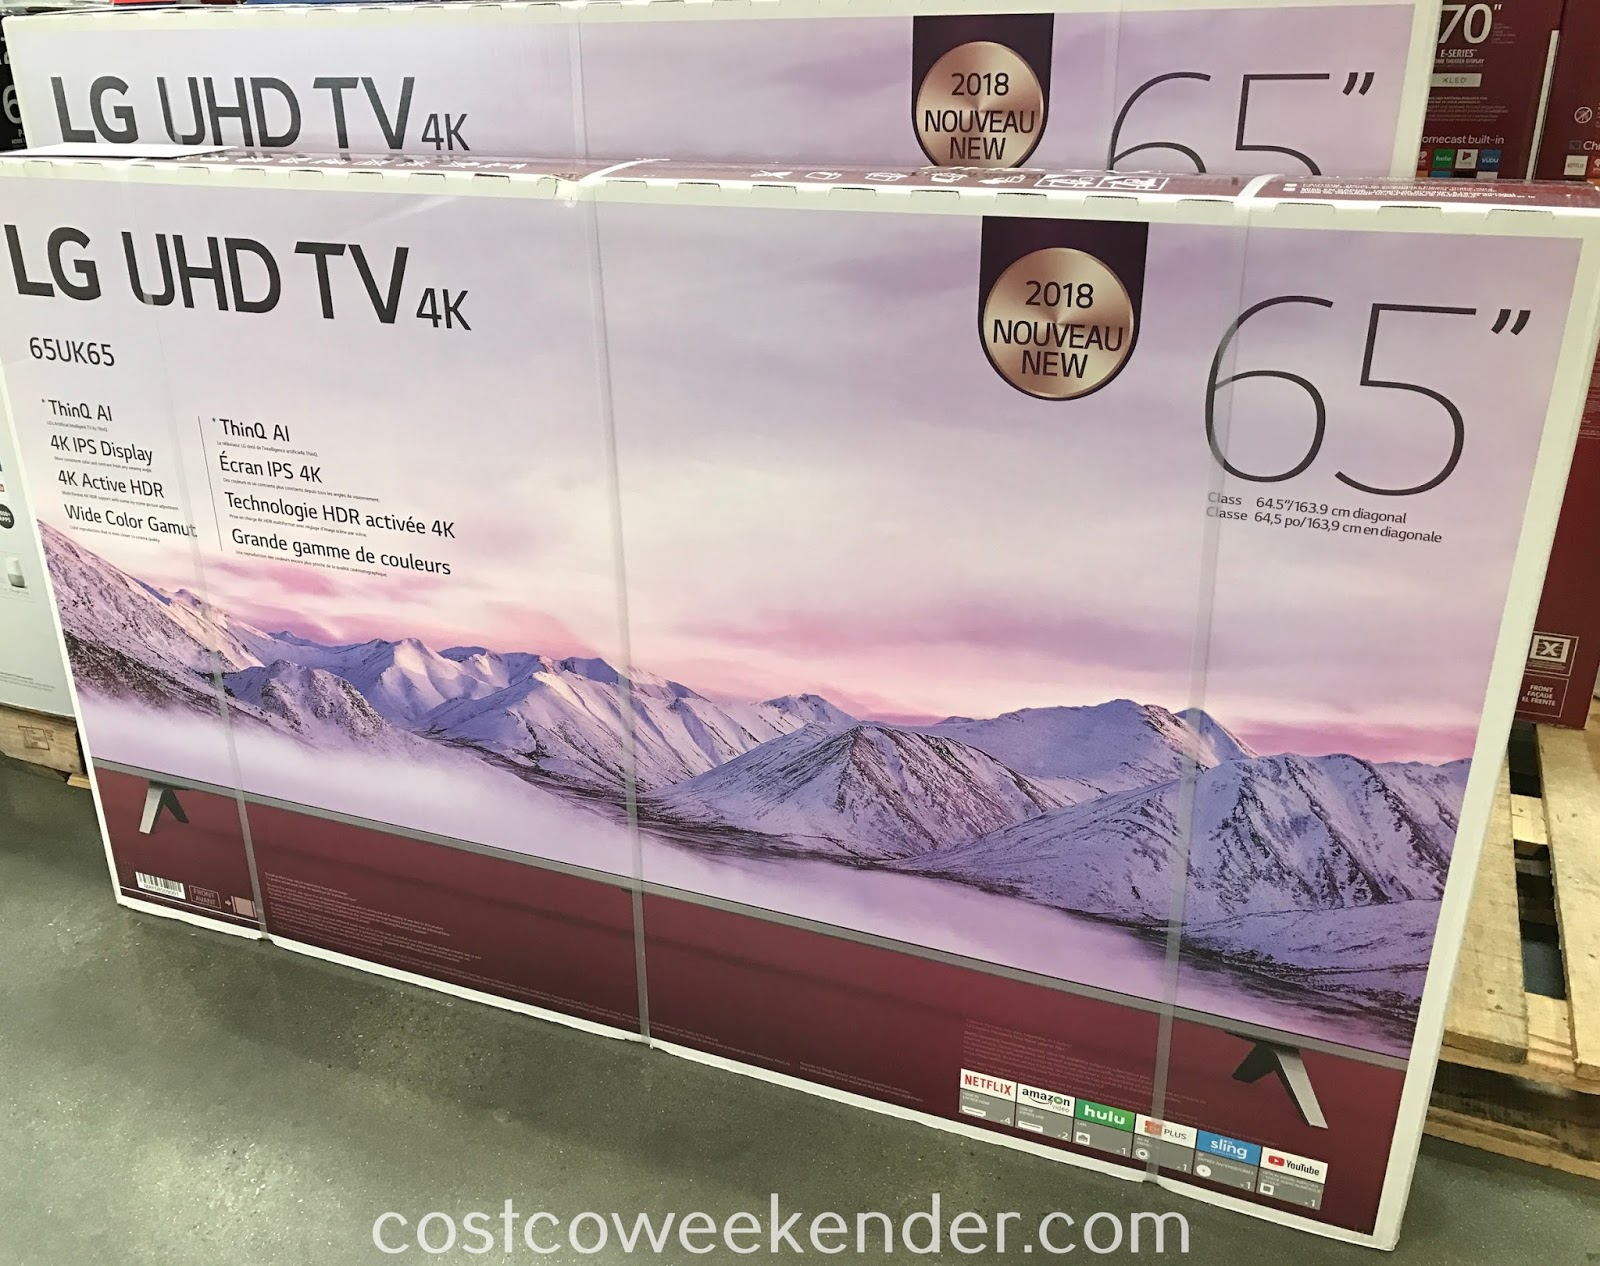 Costco 9650008 - LG 65UK6500AUA 65in 4K HDR Smart UHD TV: great for your home